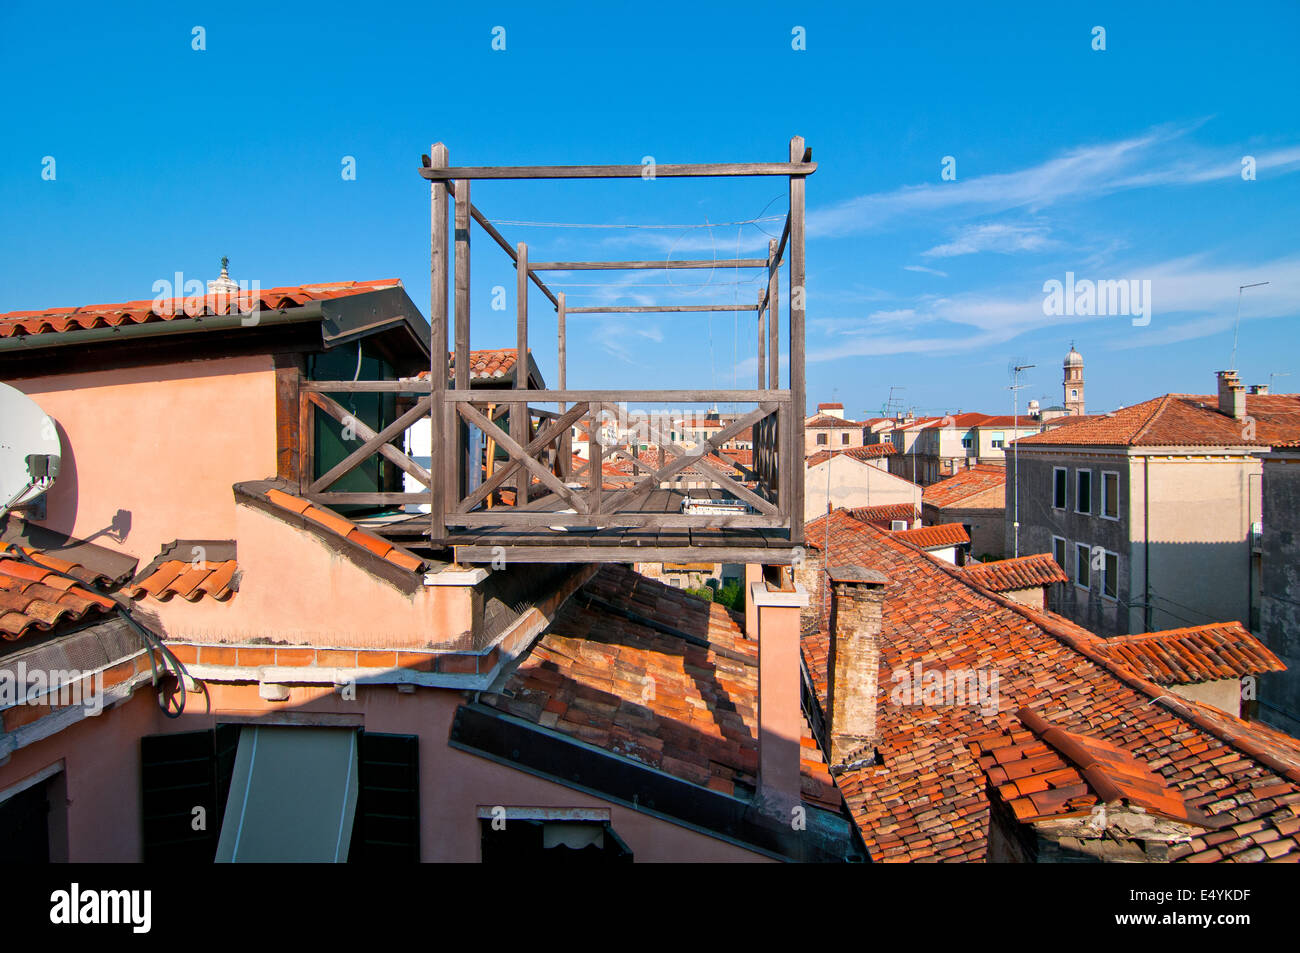 Venice Italy altana terrace Stock Photo: 71908075 - Alamy